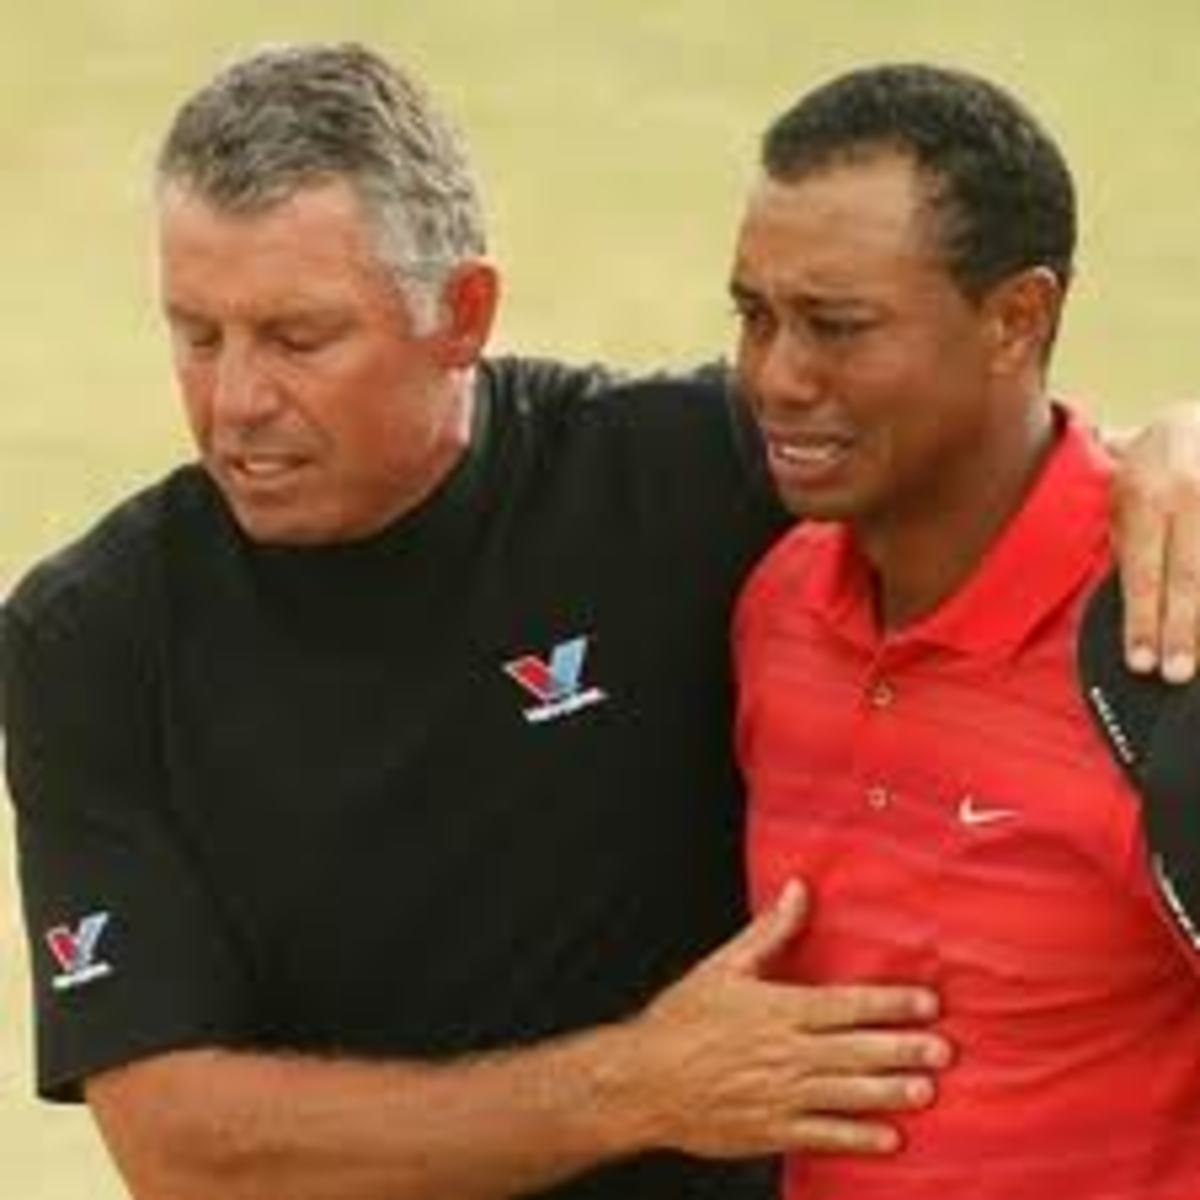 I know it hurts Tiger, if it gets worse and you can't win majors anymore, just let me know right away, buddy. It sucks about your joints and all. BTW, do you know any young skinny GOLF talent around here?